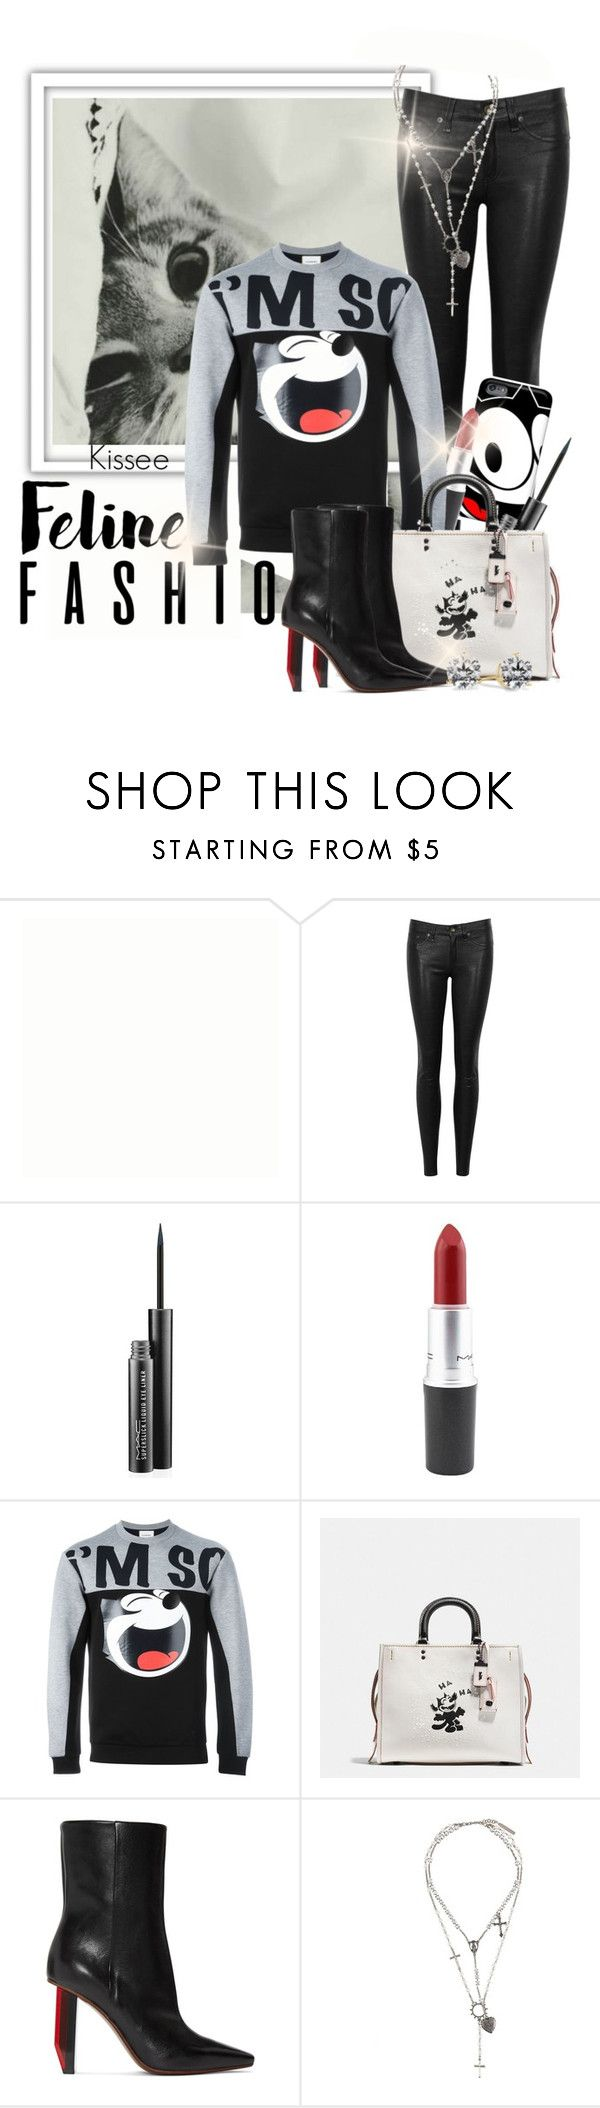 """Untitled #1101"" by kisses4u ❤ liked on Polyvore featuring rag & bone/JEAN, MAC Cosmetics, Iceberg, Coach, Vetements, Givenchy, feline, felixthecat and fall16"